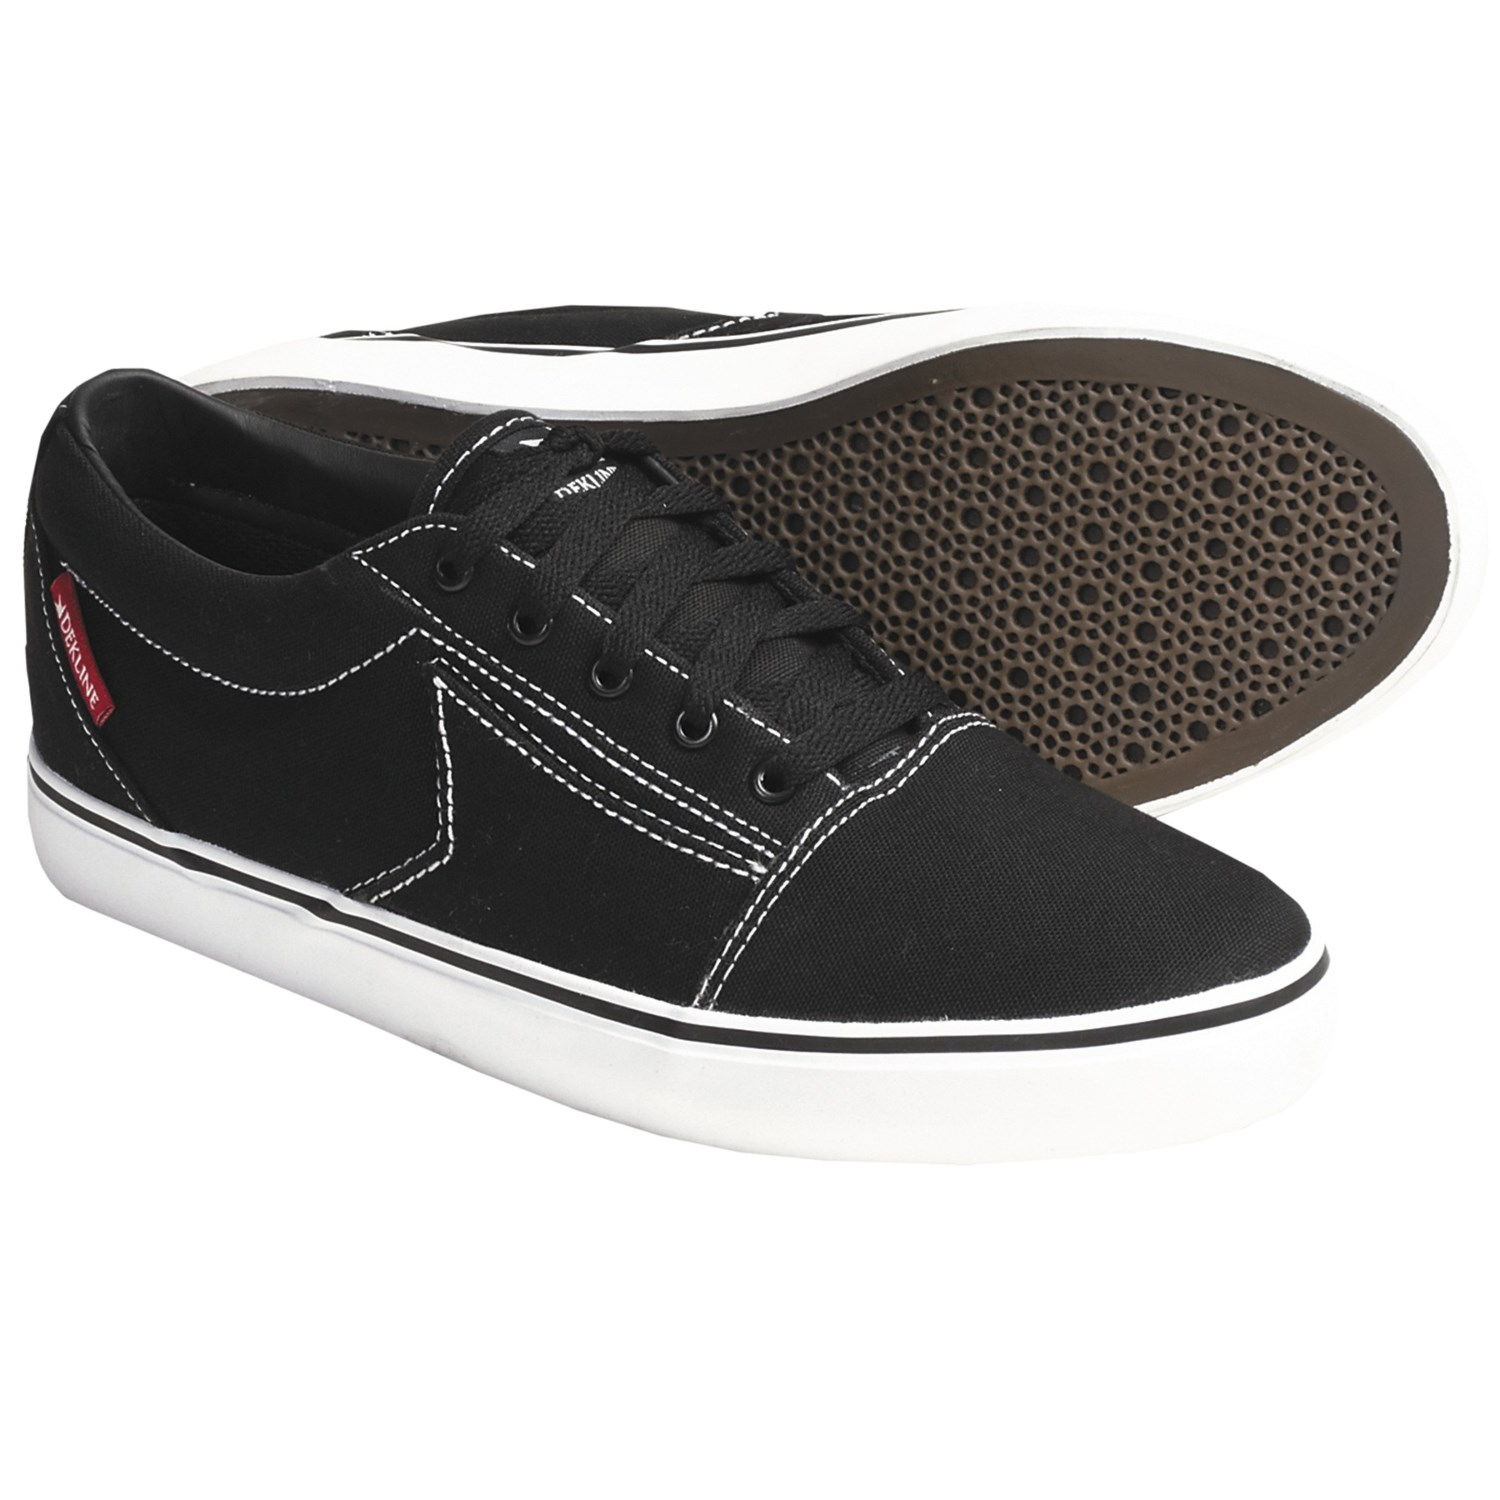 PISULA - men s sneakers shoes for sale at from ALDO | SHOES! lets